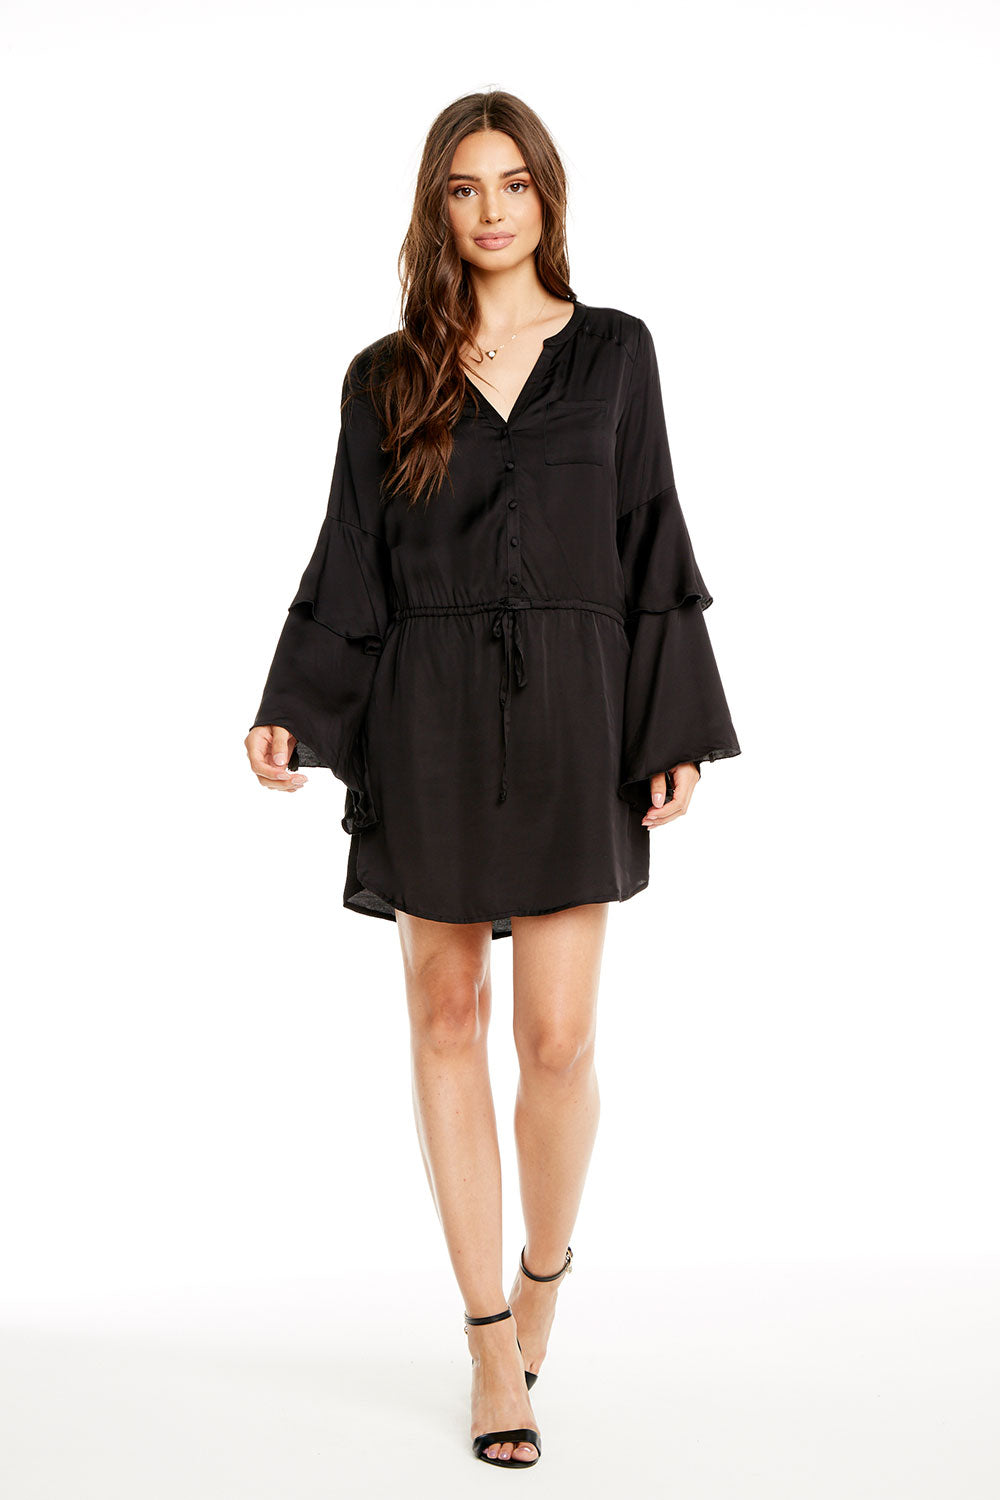 SILKY BASICS TIERED BELL SLEEVE BUTTON DOWN HI-LO SHIRTTAIL DRESS WOMENS chaserbrand4.myshopify.com